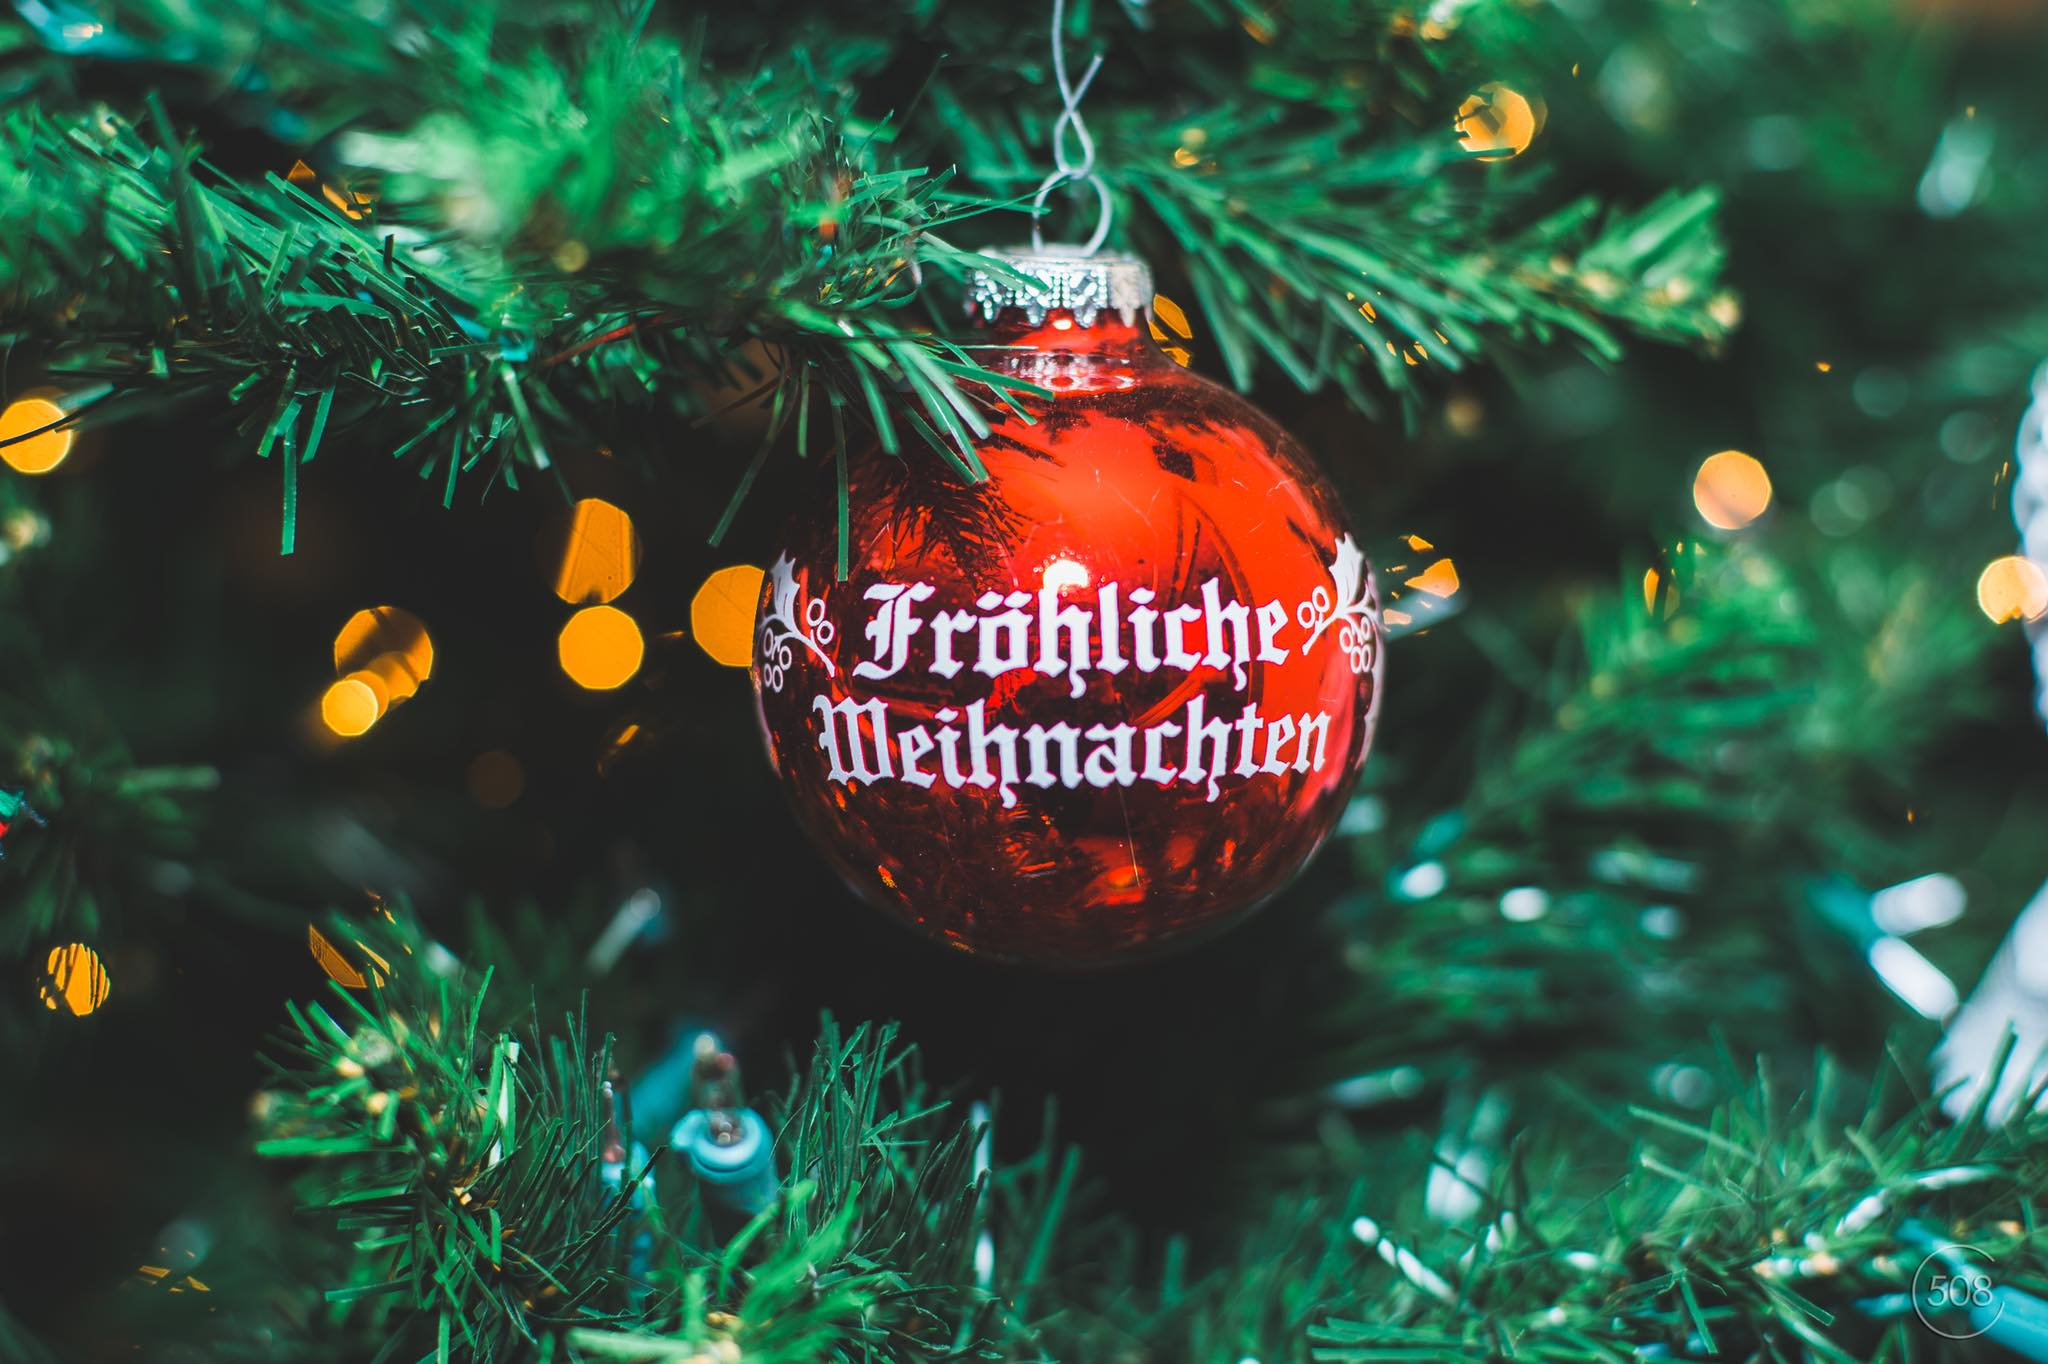 German School Association Weihnachts